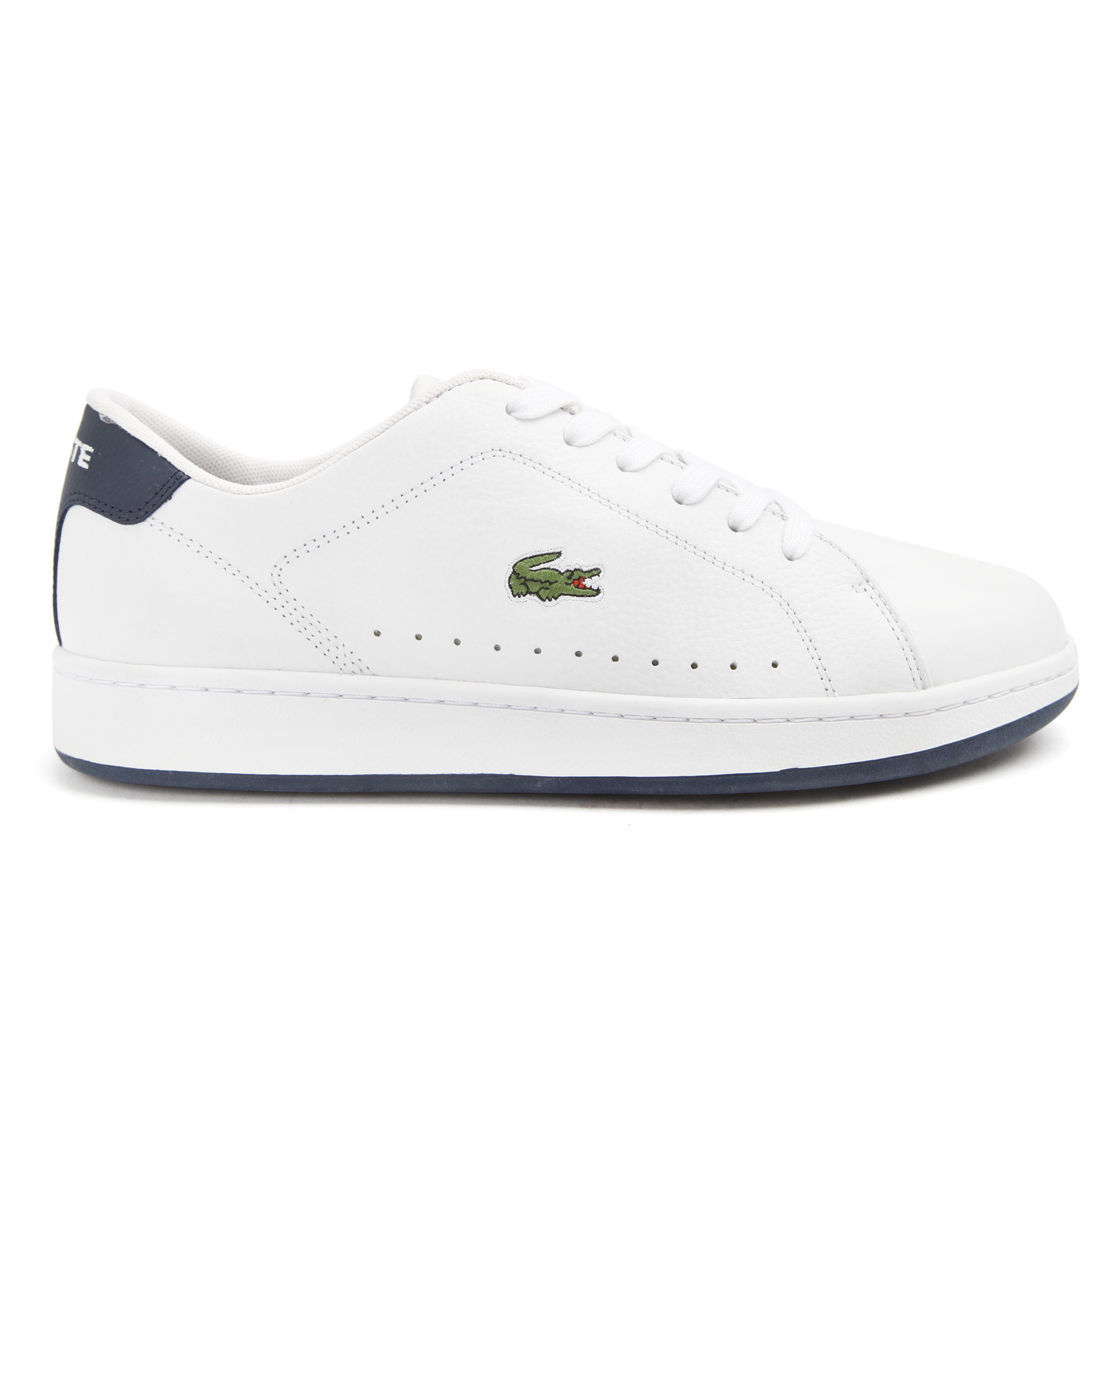 lacoste carnaby white leather sneakers in white for lyst